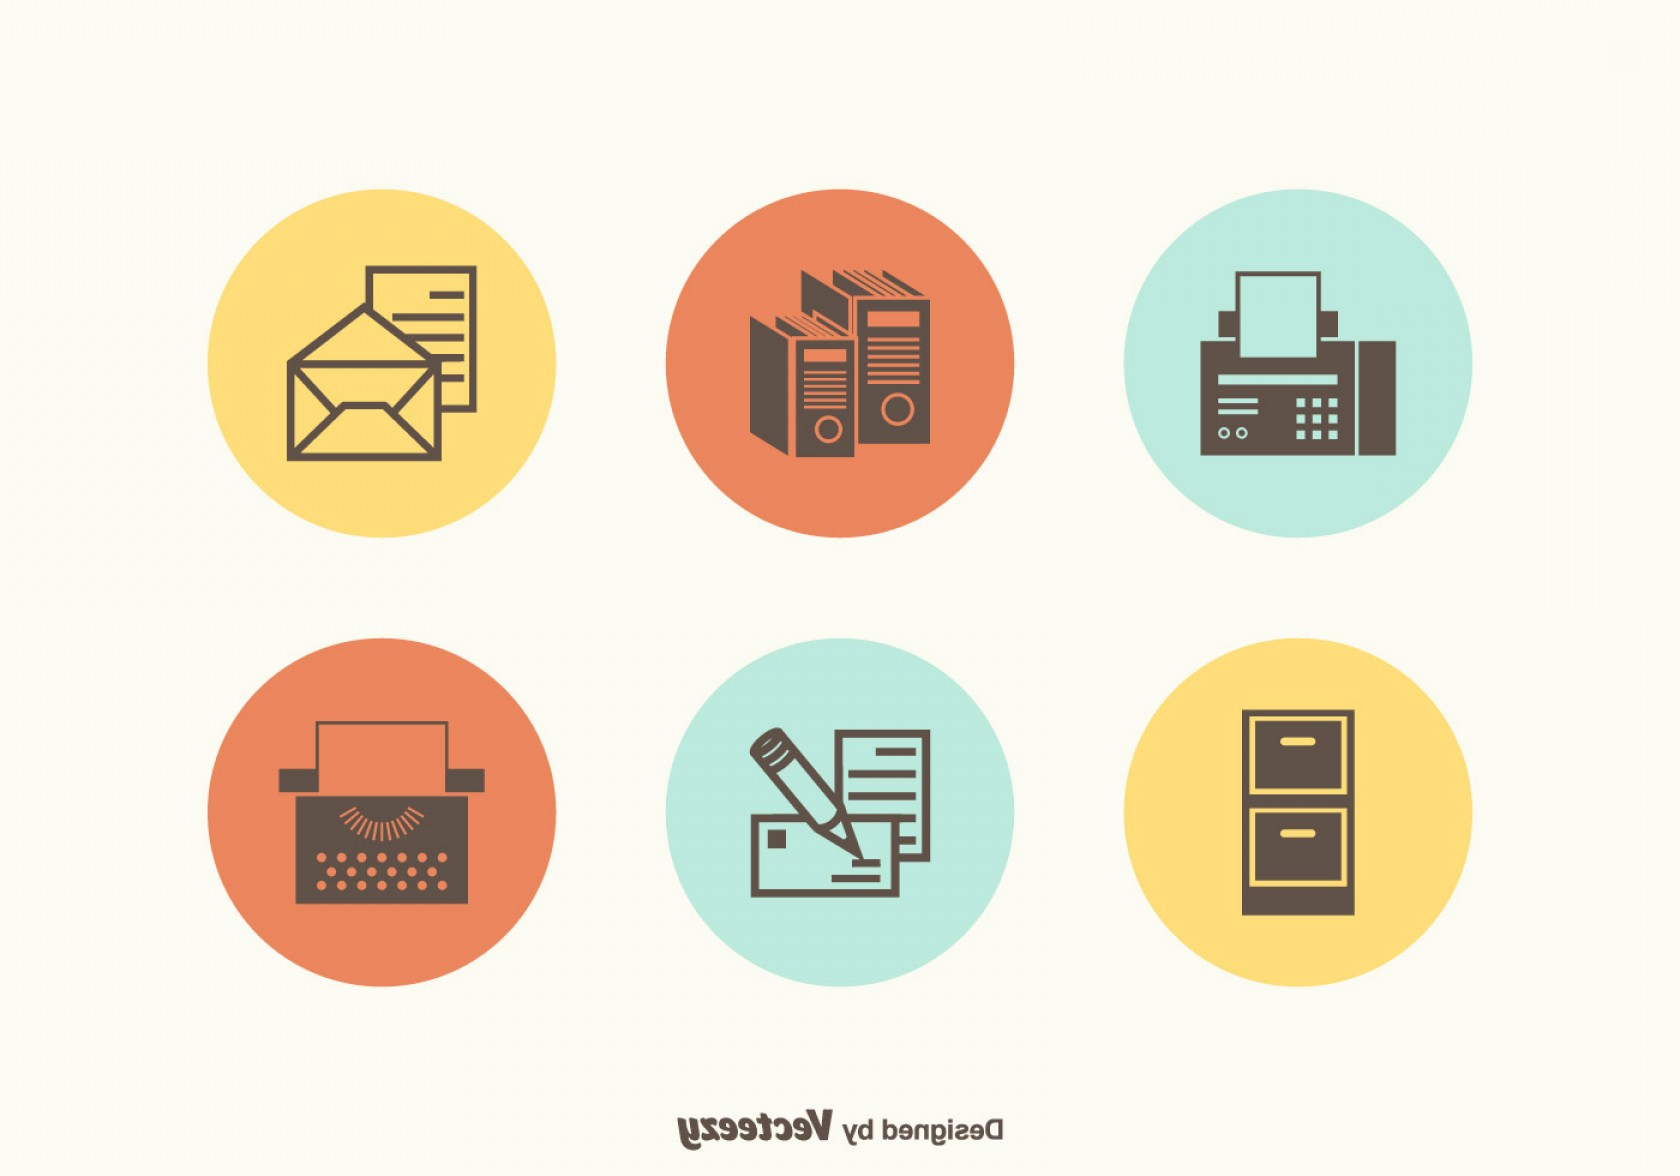 Supplies Vector Graphic: Free Vector Free Retro Office Supplies Vector Icons